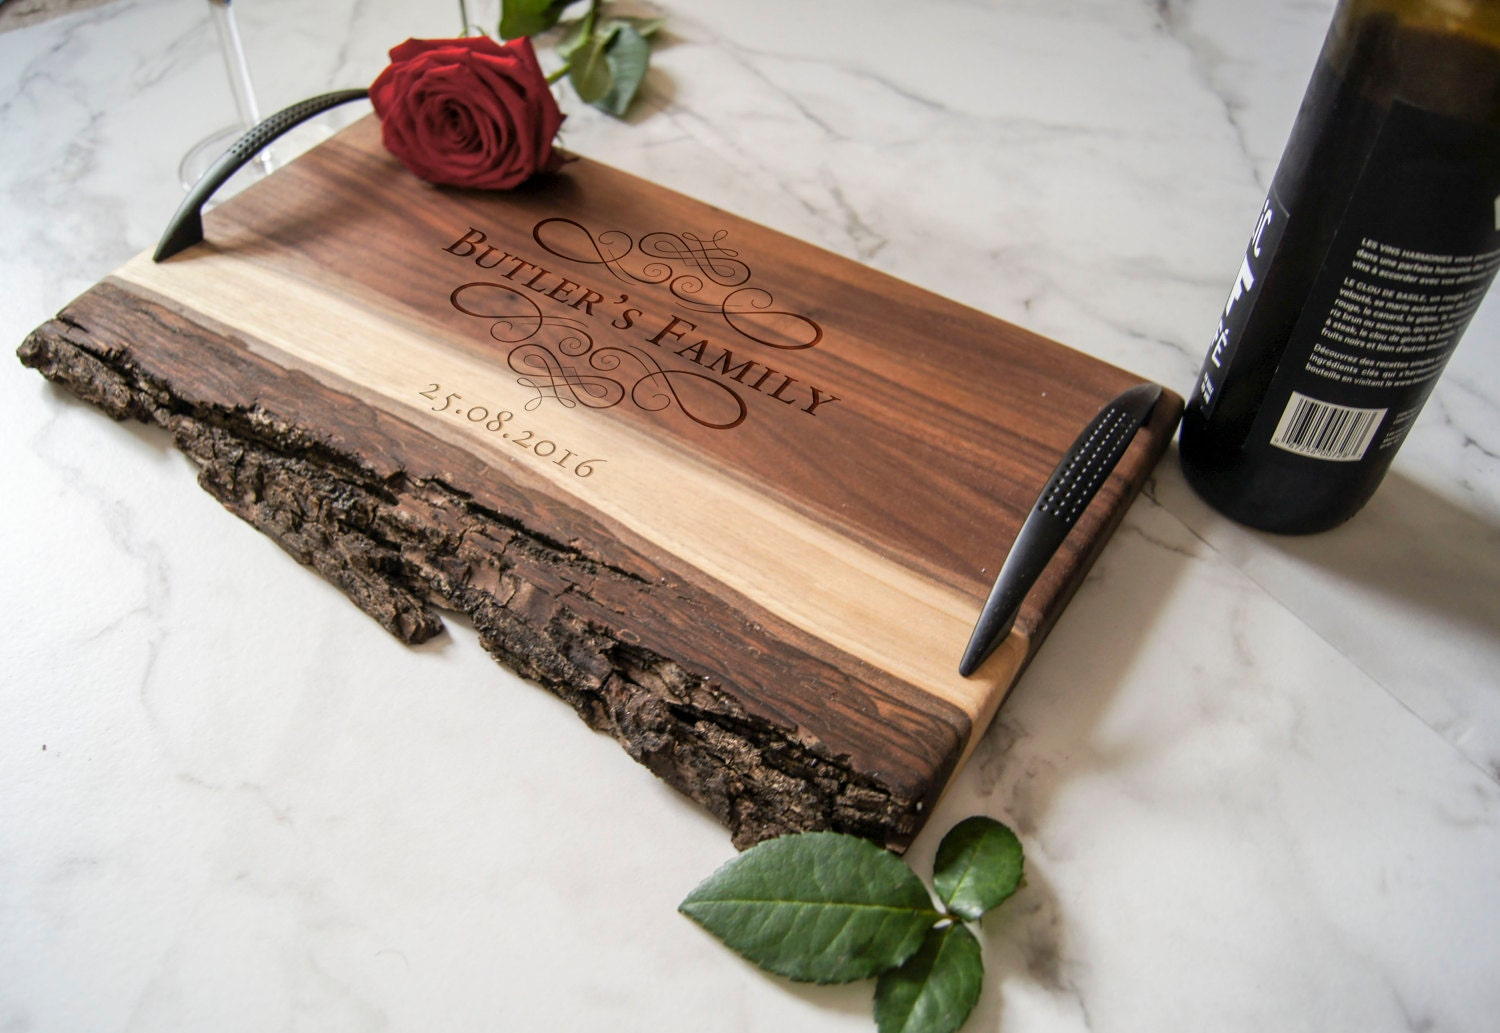 Unique Wedding Gifts Canada: Personalized Serving Tray Custom Serving Tray Wedding Gifts